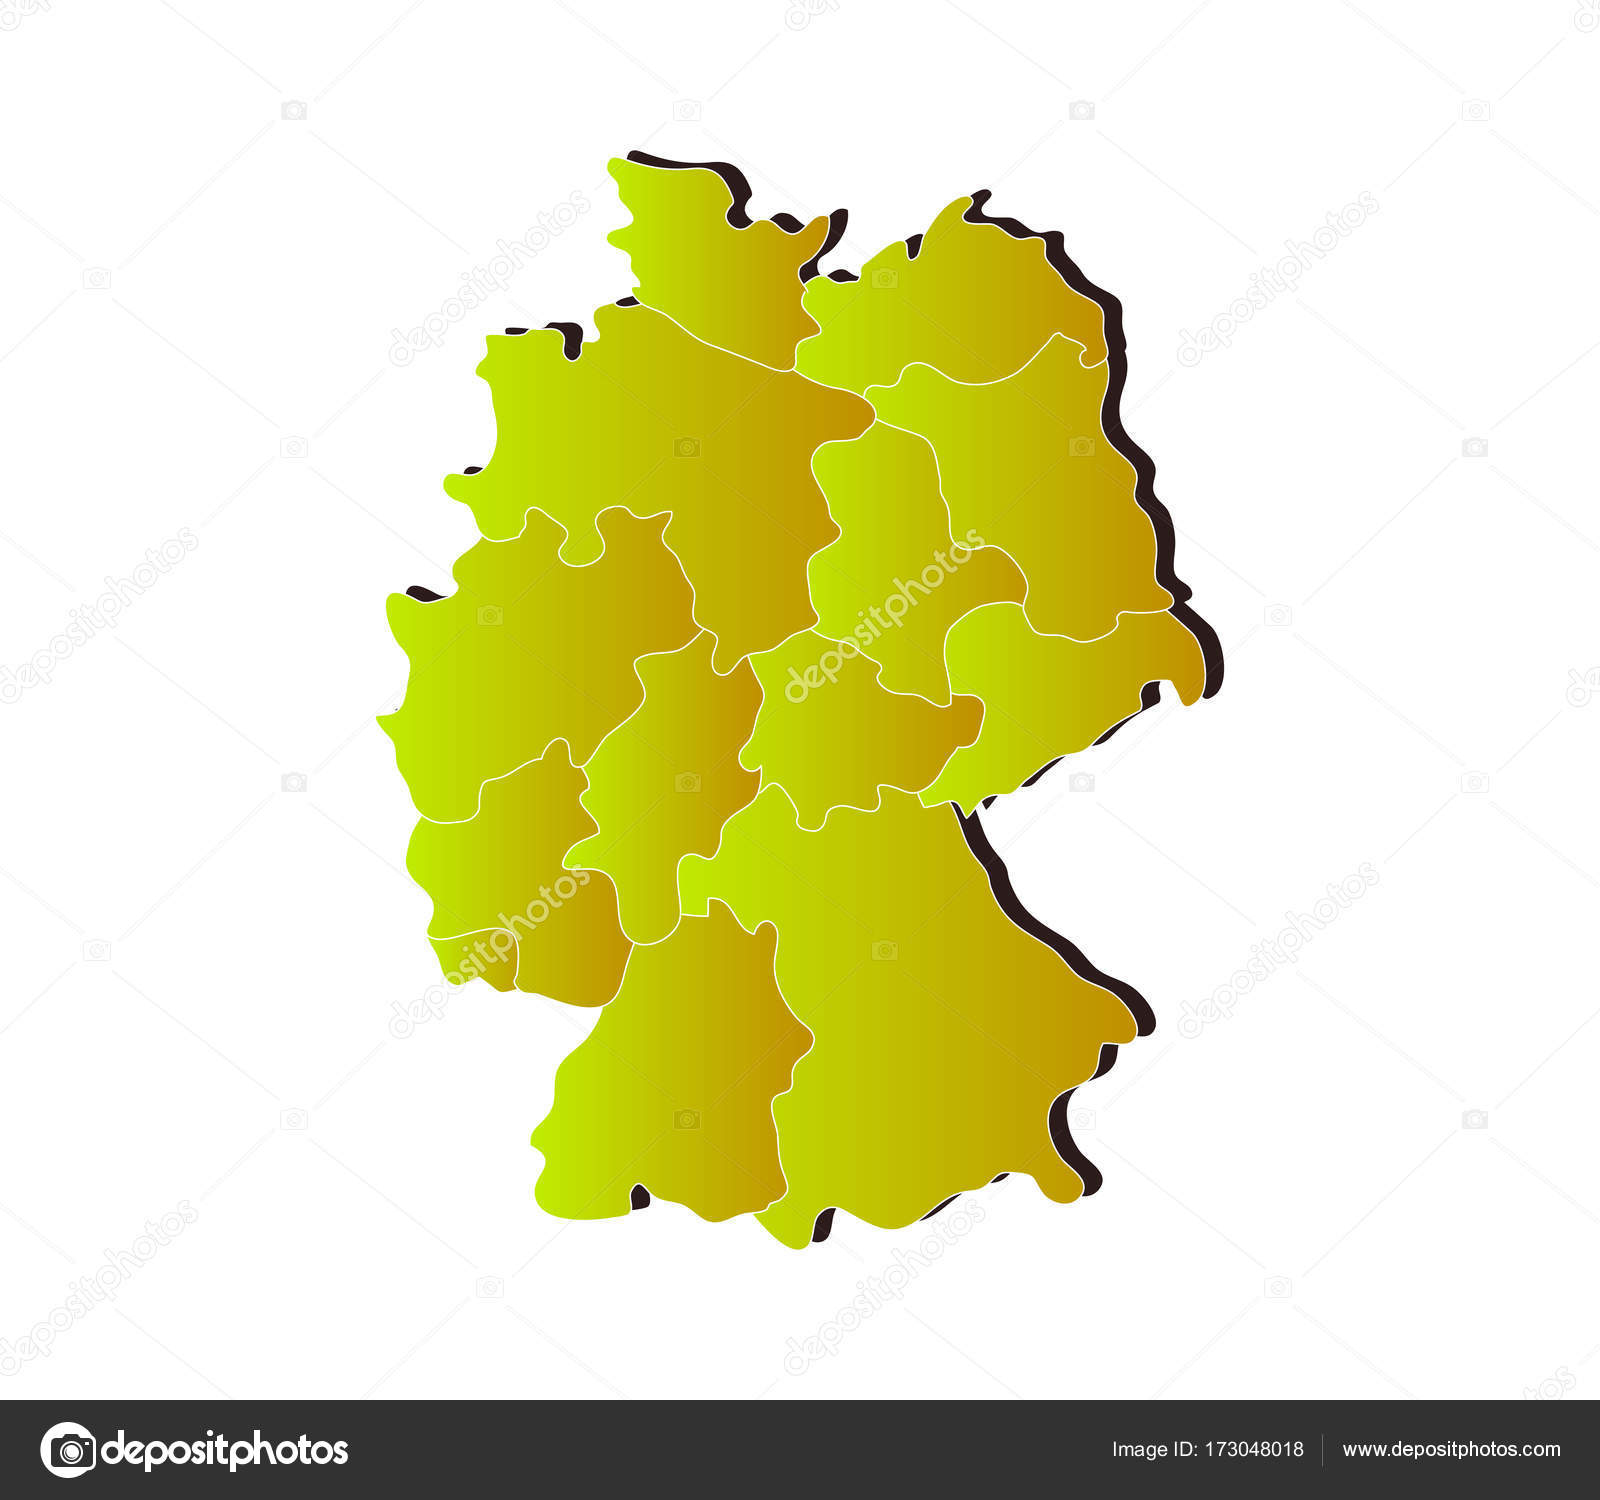 Map Germany Regions White Background Stock Vector marcotrapani